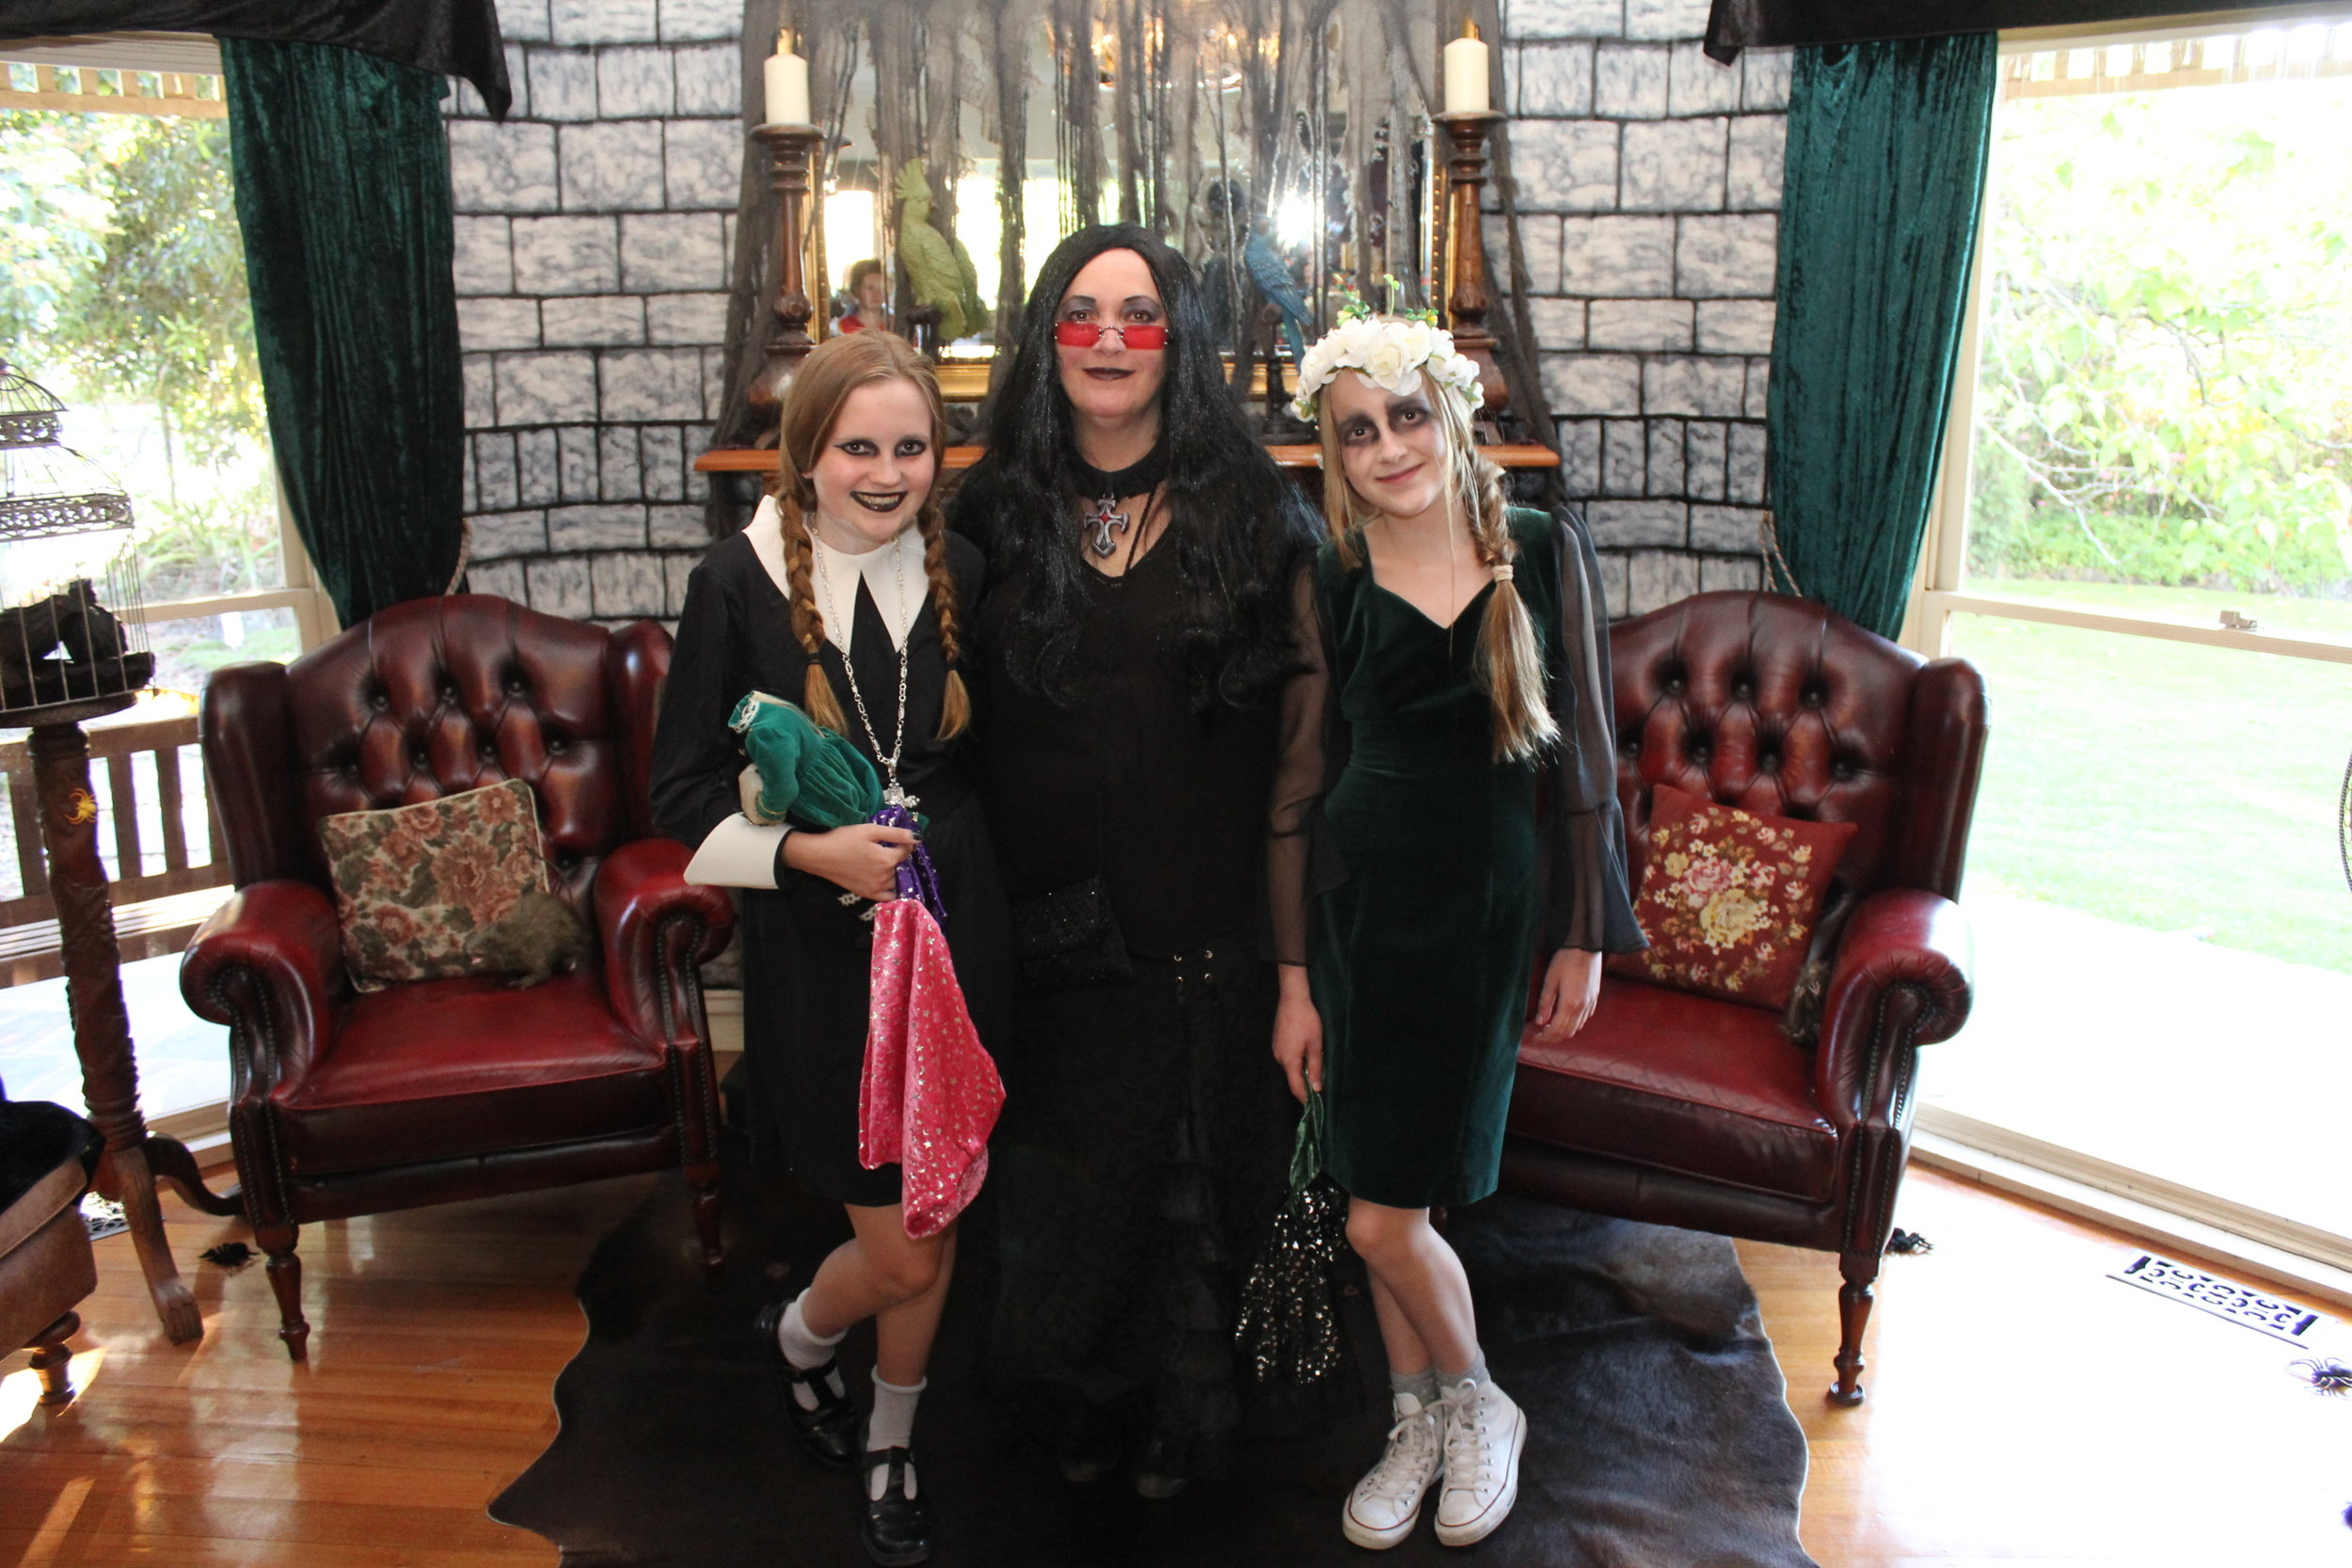 The Addams Family, Morticia, Wednesday and Ophelia